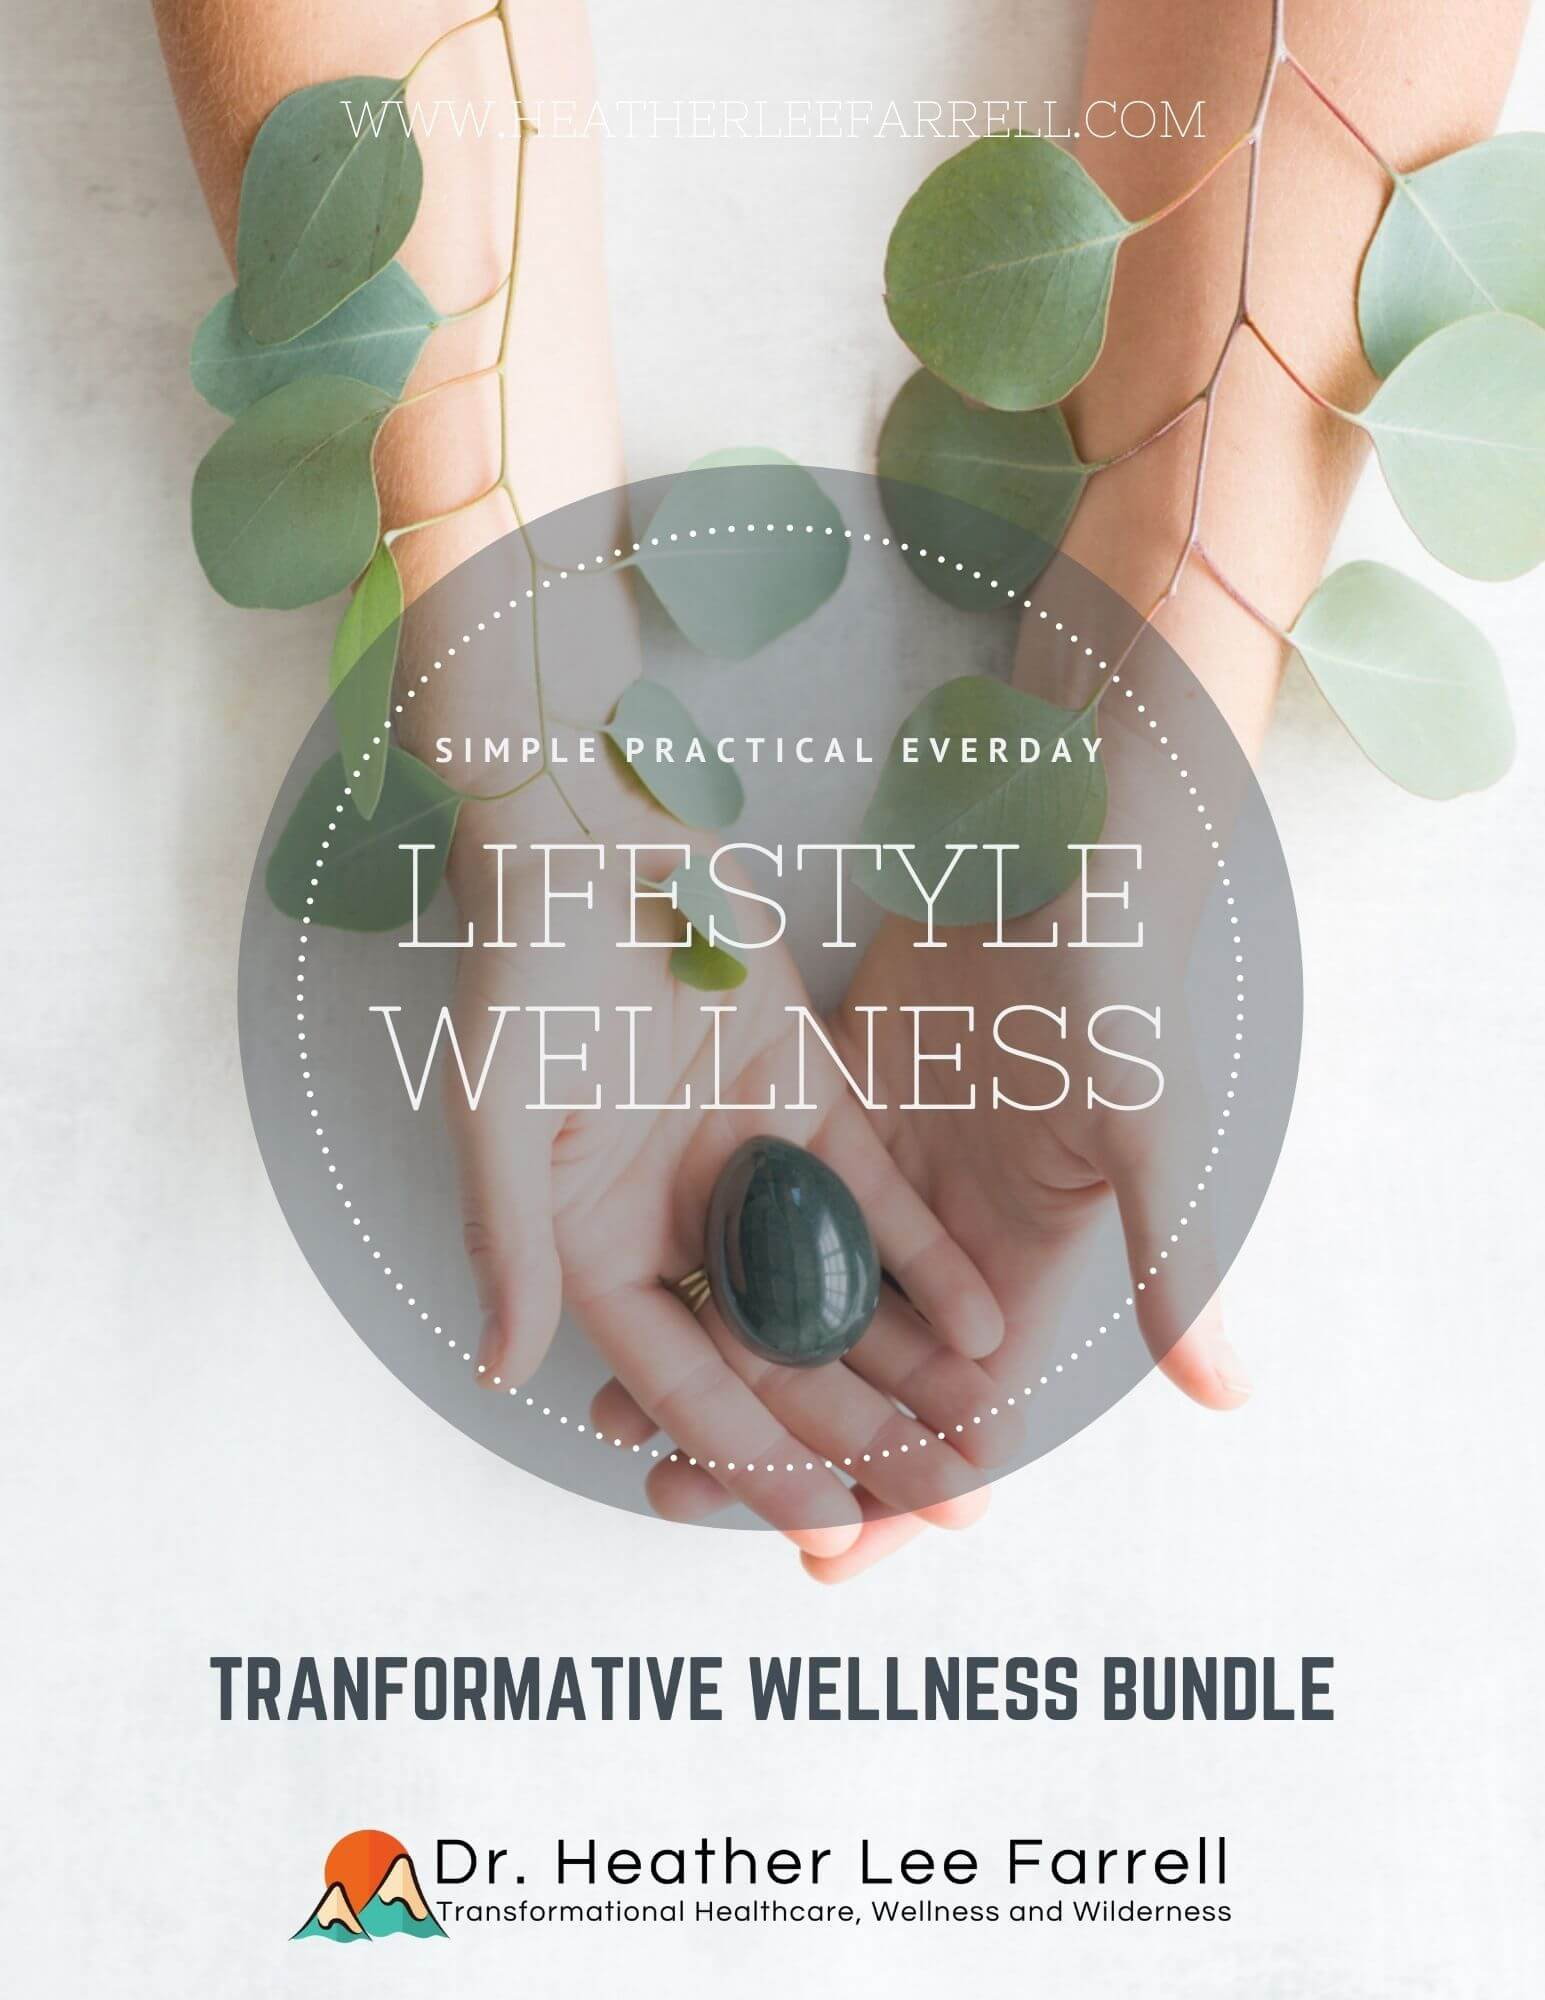 Lifestyle wellness person holding a plant